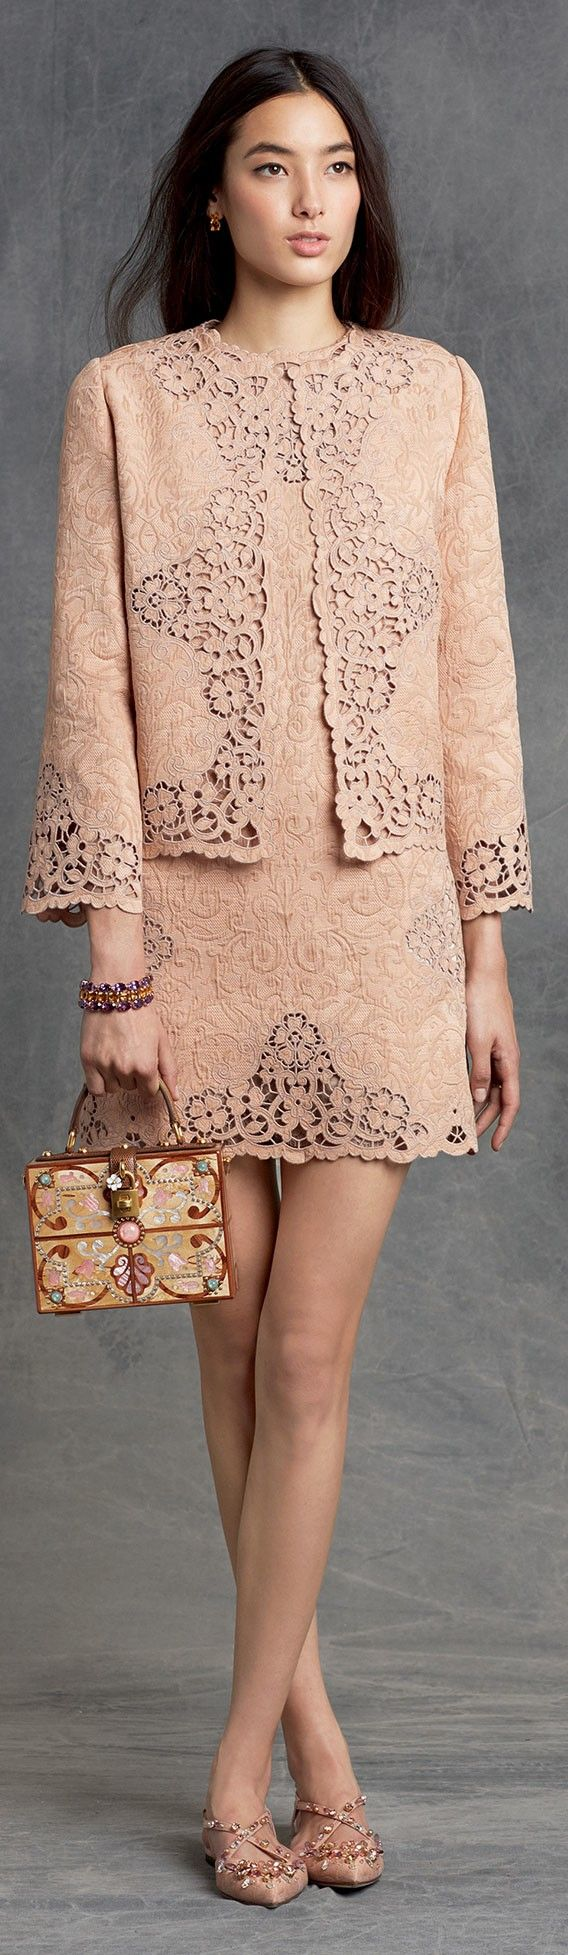 Dolce & Gabbana Winter 2016                                                                                                                                                                                 More